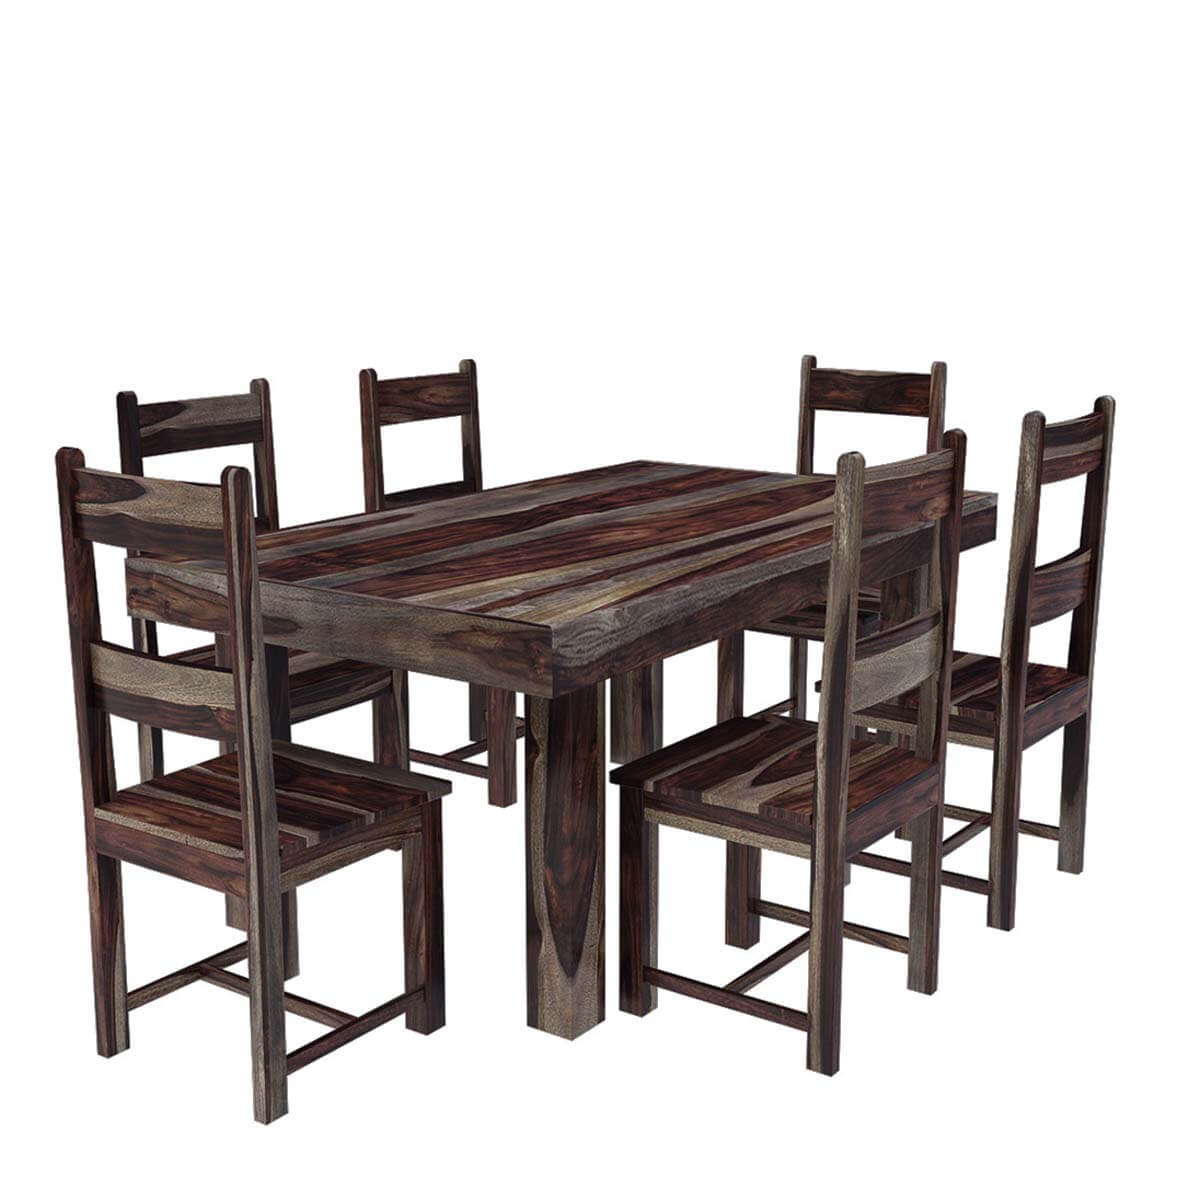 Frisco modern solid wood casual rustic dining room table for Solid wood dining table sets